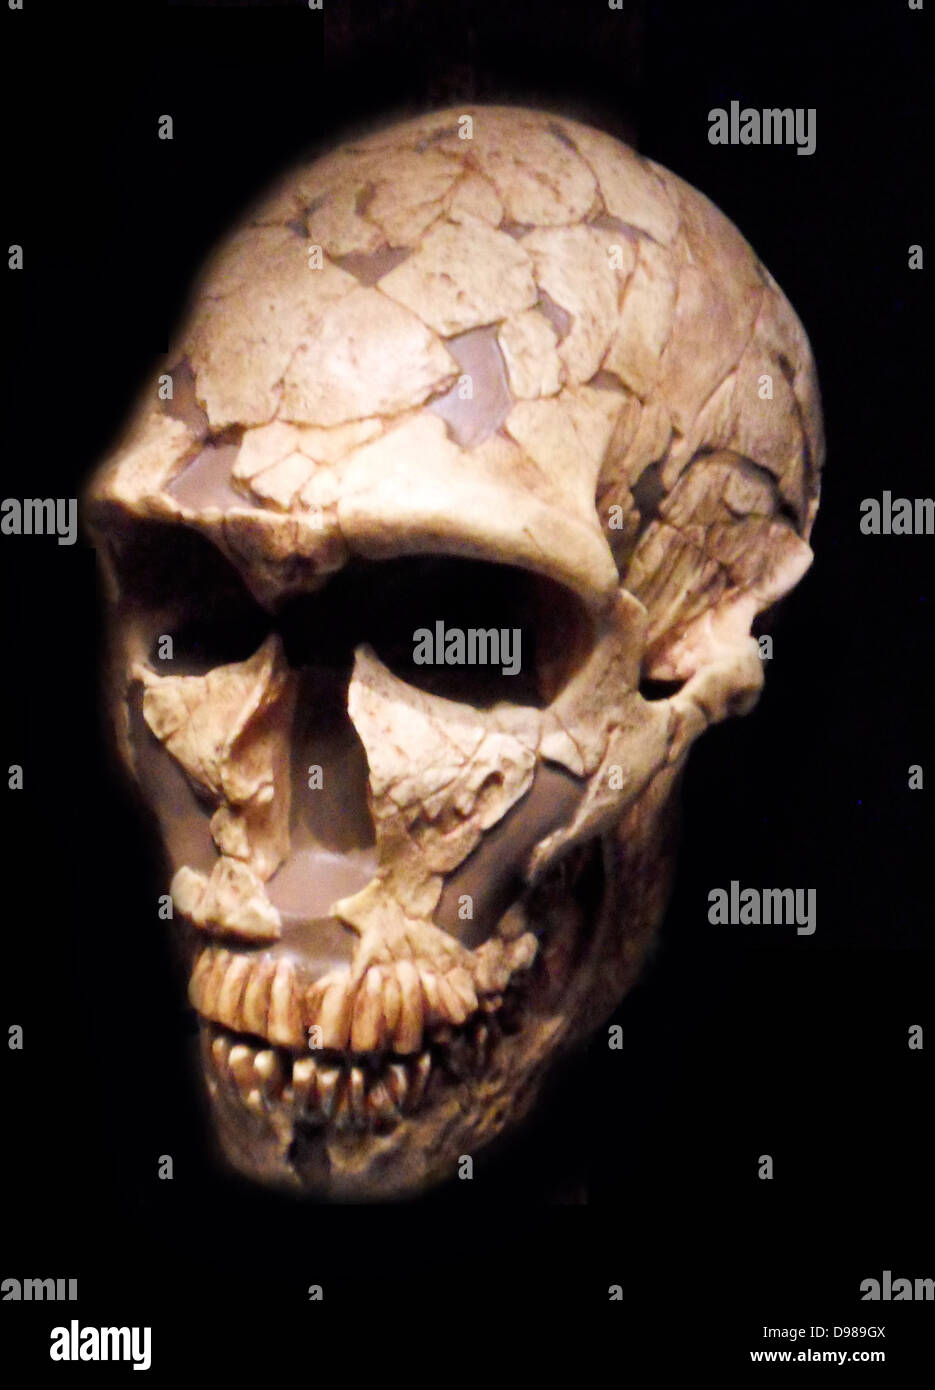 Hominid Stock Photos & Hominid Stock Images - Alamy